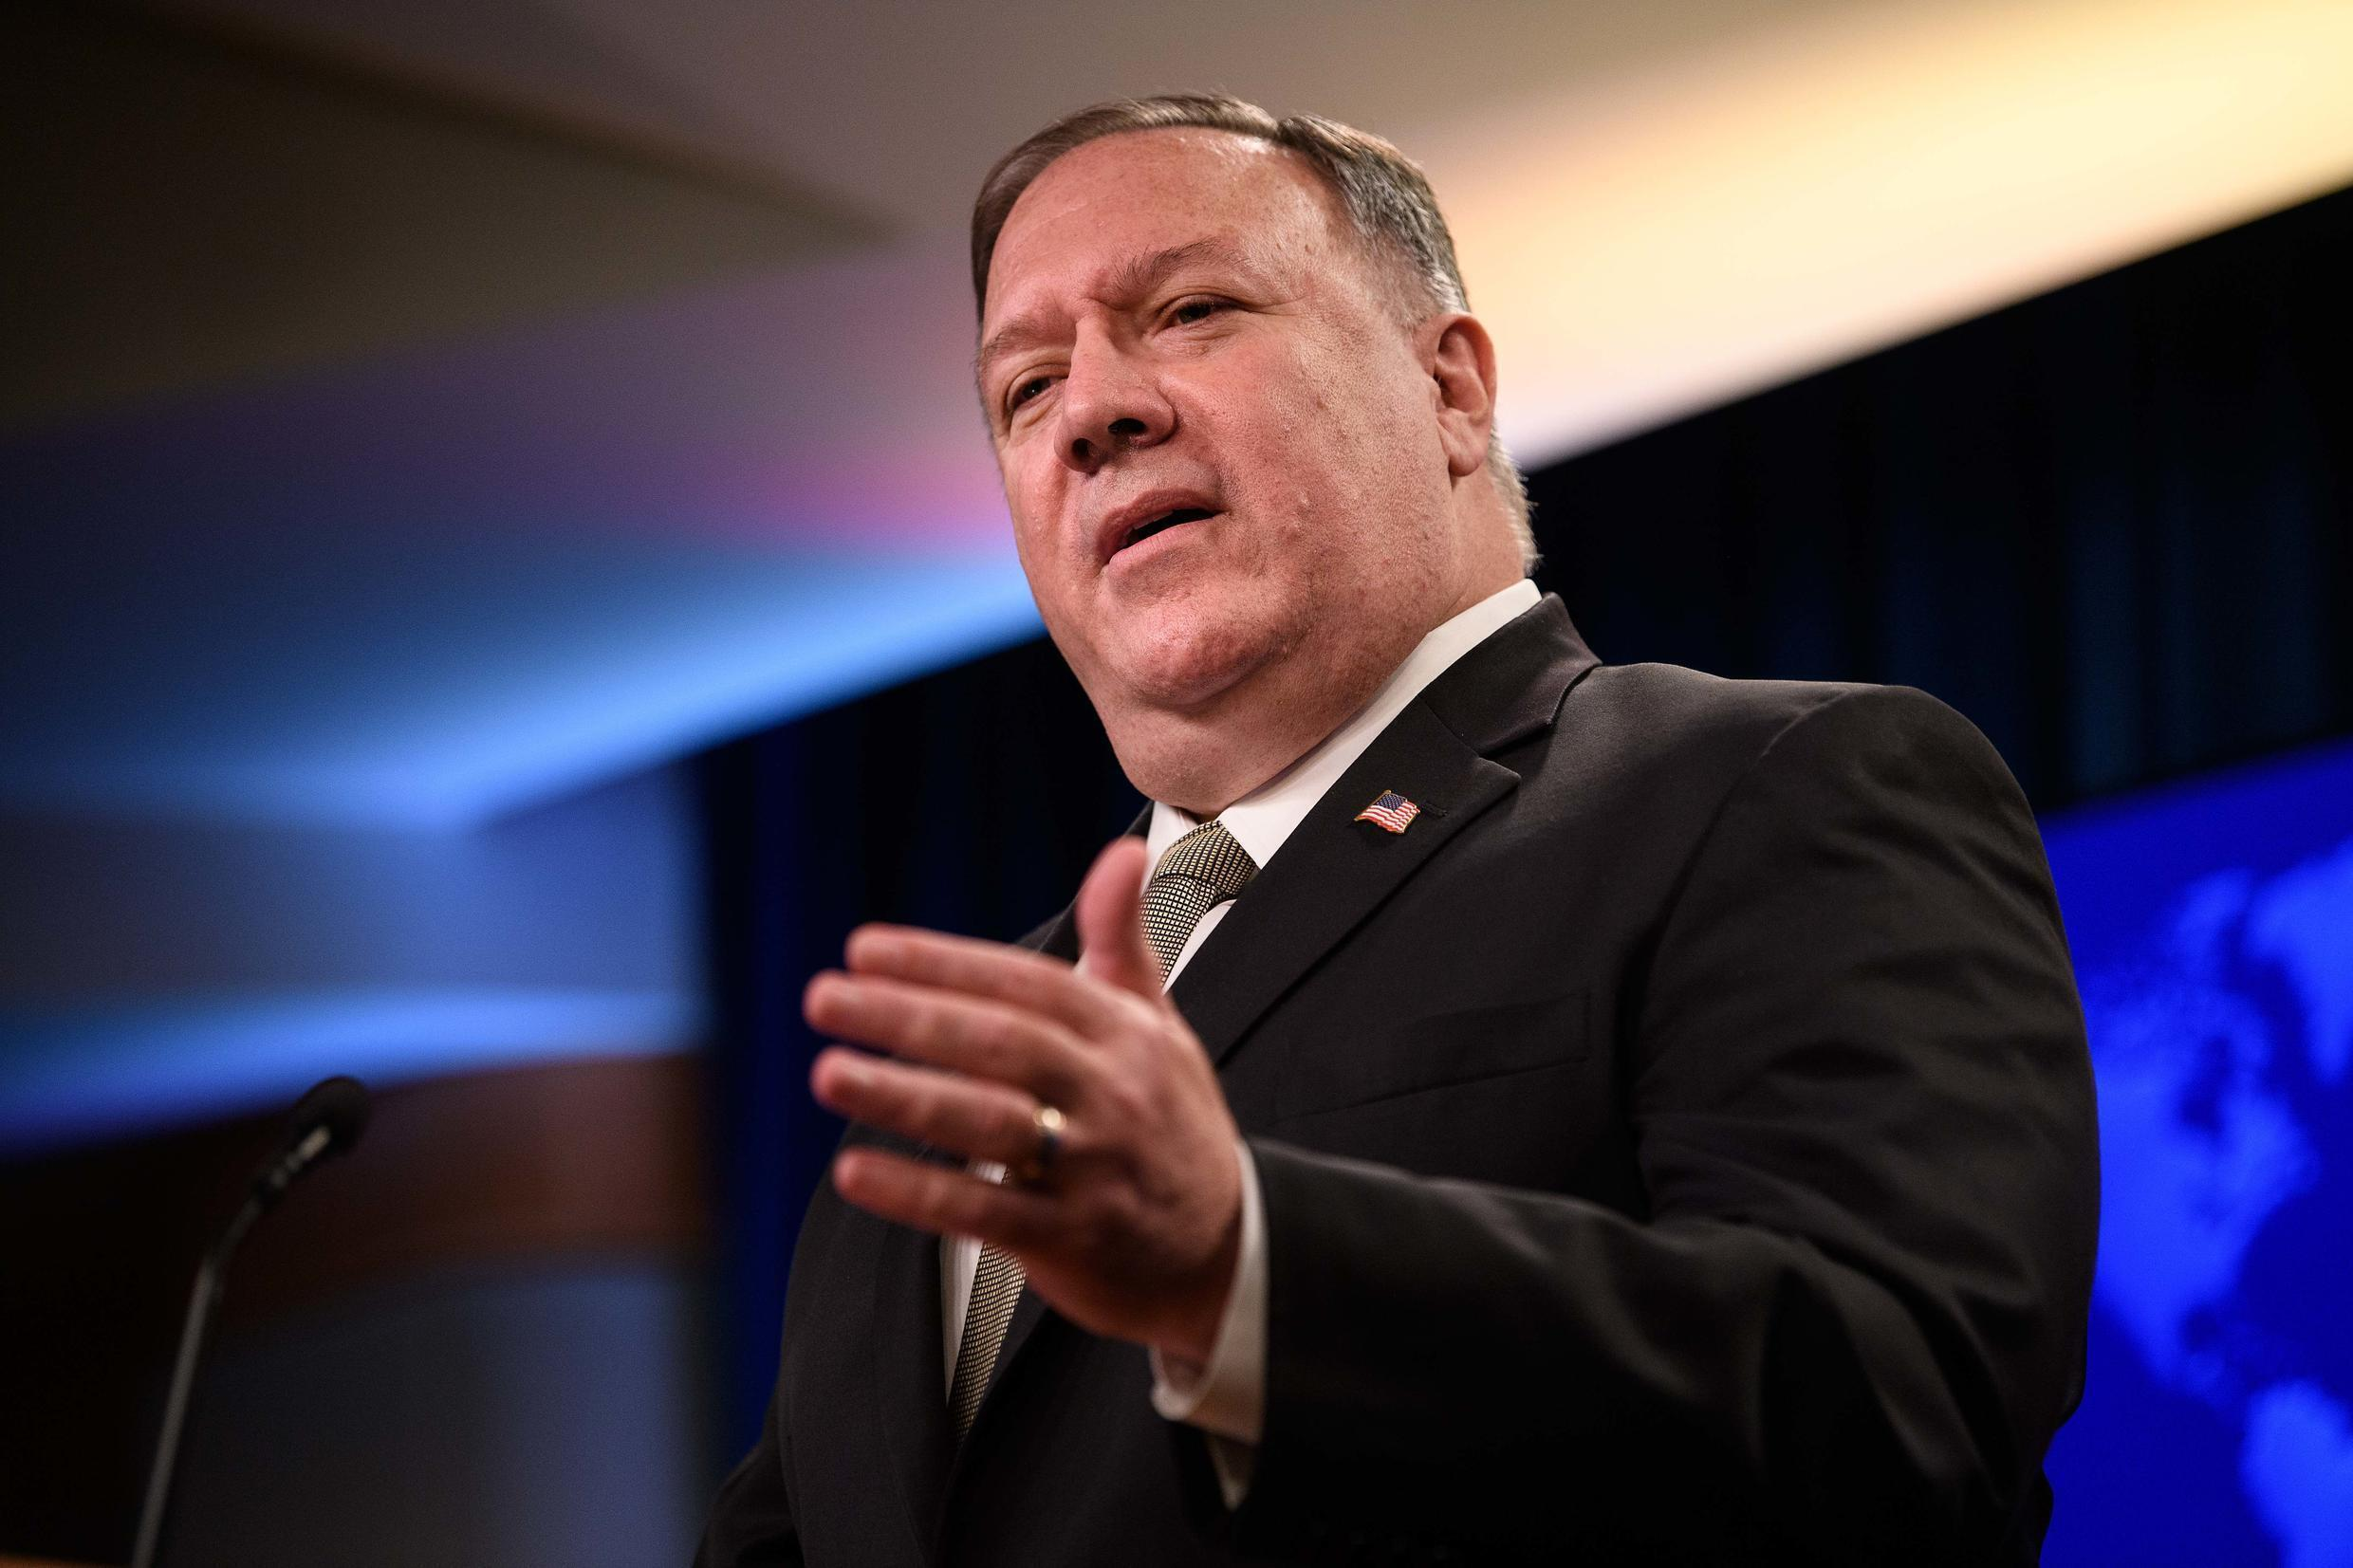 US Secretary of State Mike Pompeo announced sanctions on the prosecutor of the International Criminal Court, Fatou Bensouda